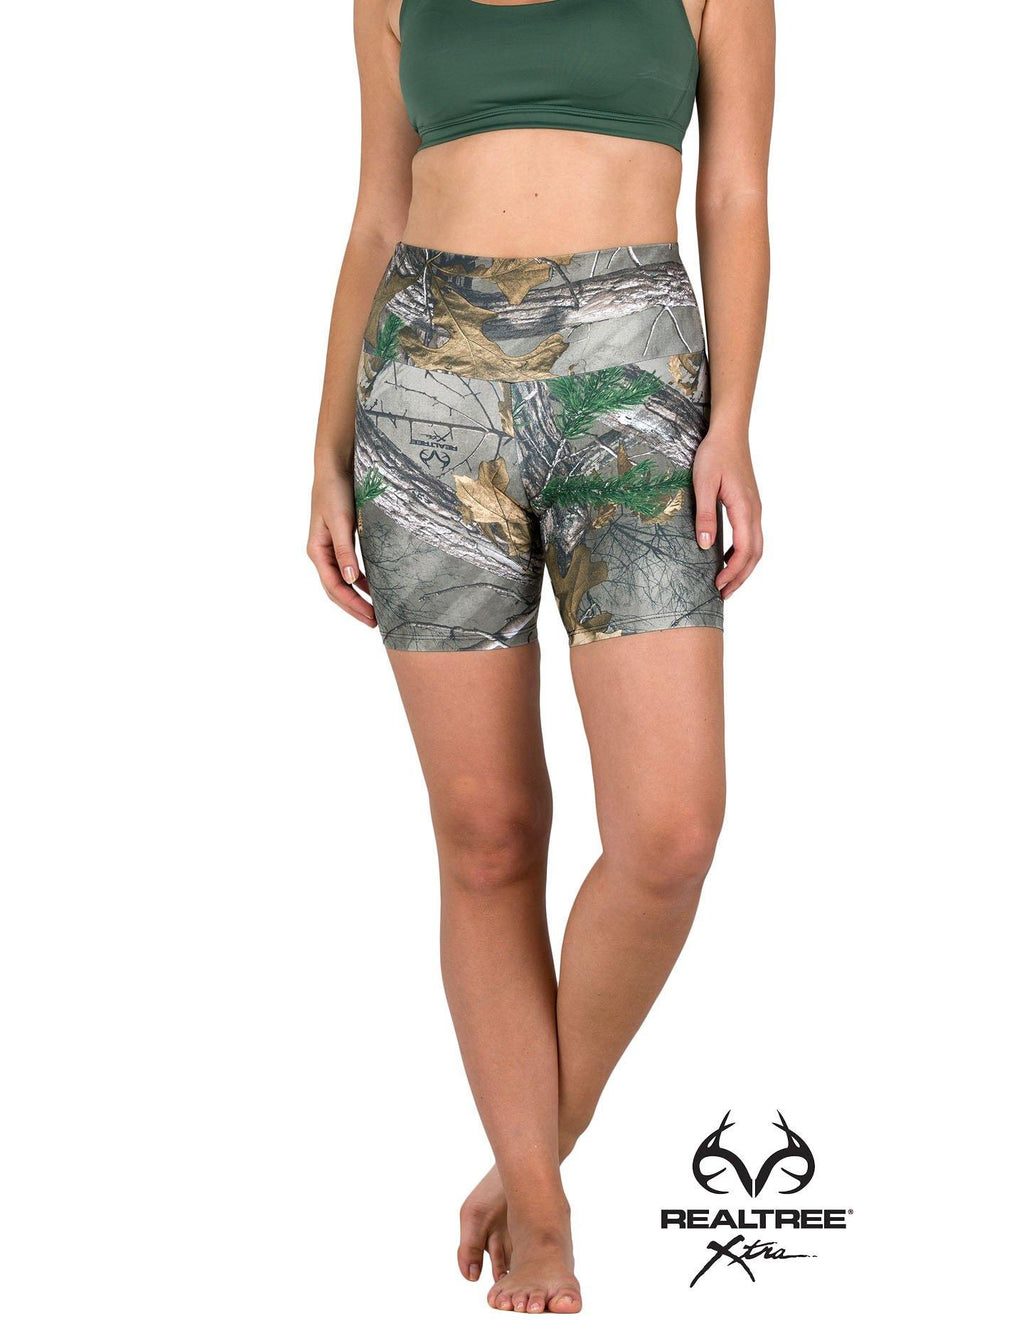 Apsara Shorts High Waist, Realtree Xtra